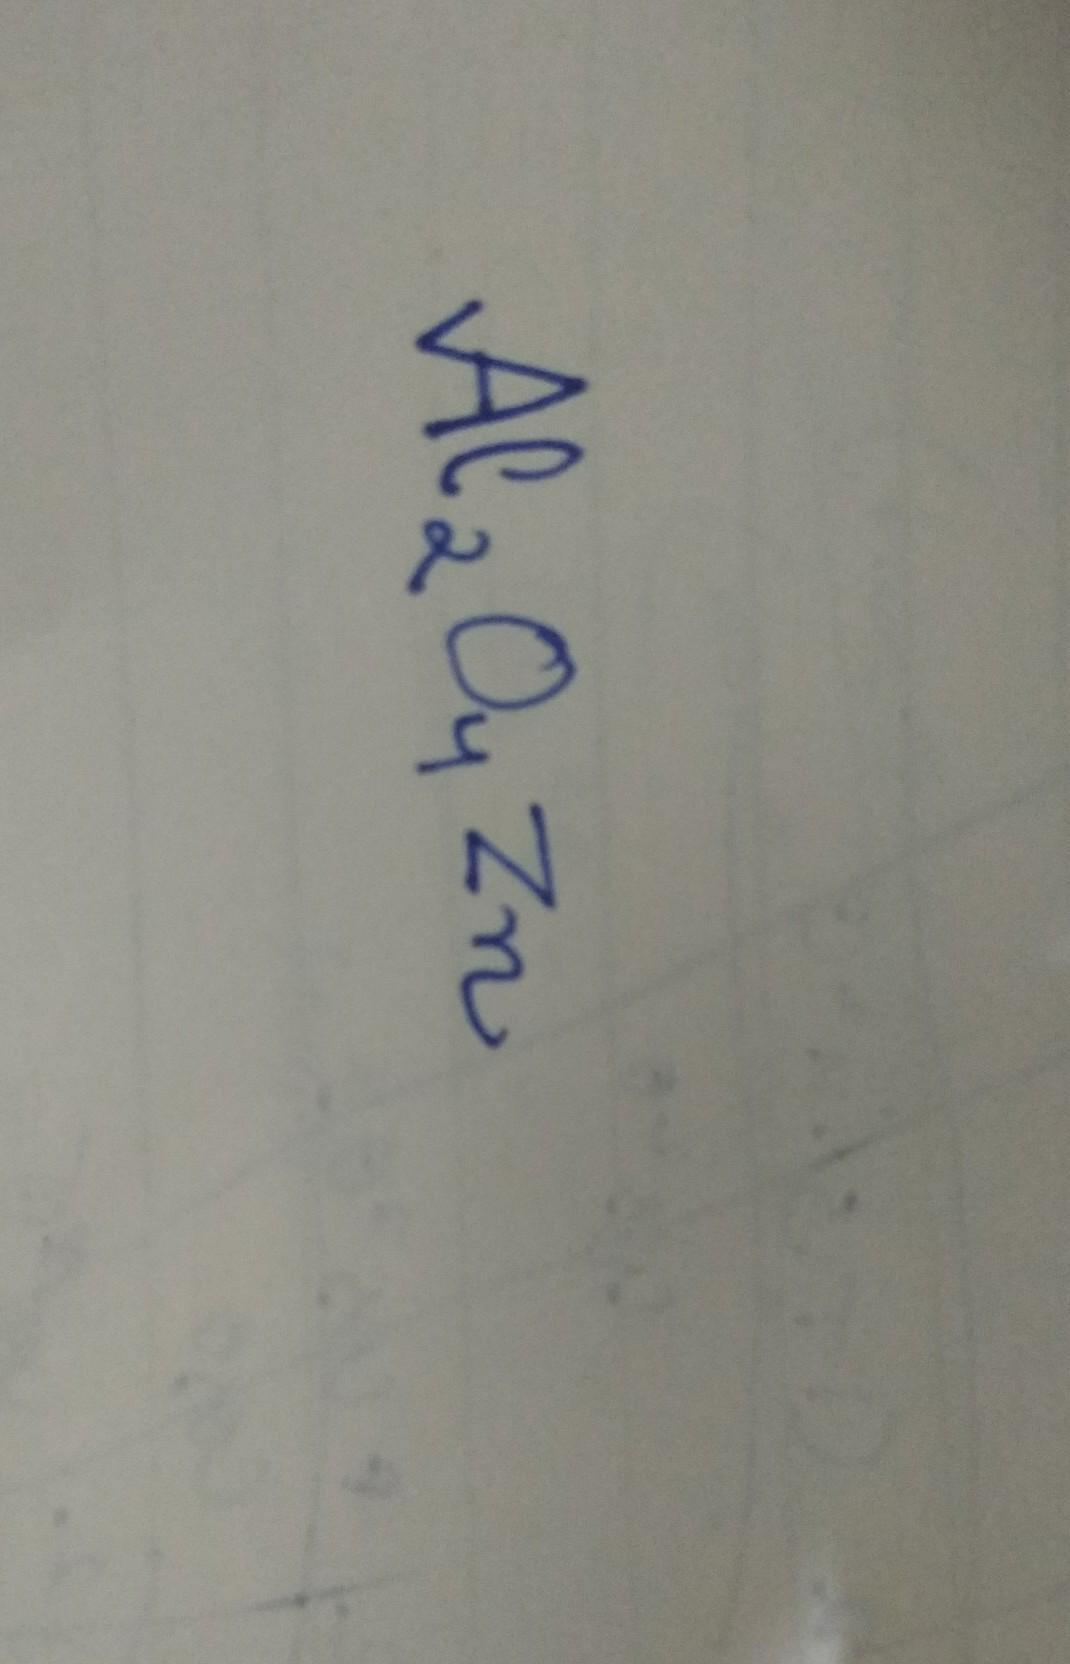 how to write formula of aluminate and zincate - Brainly in